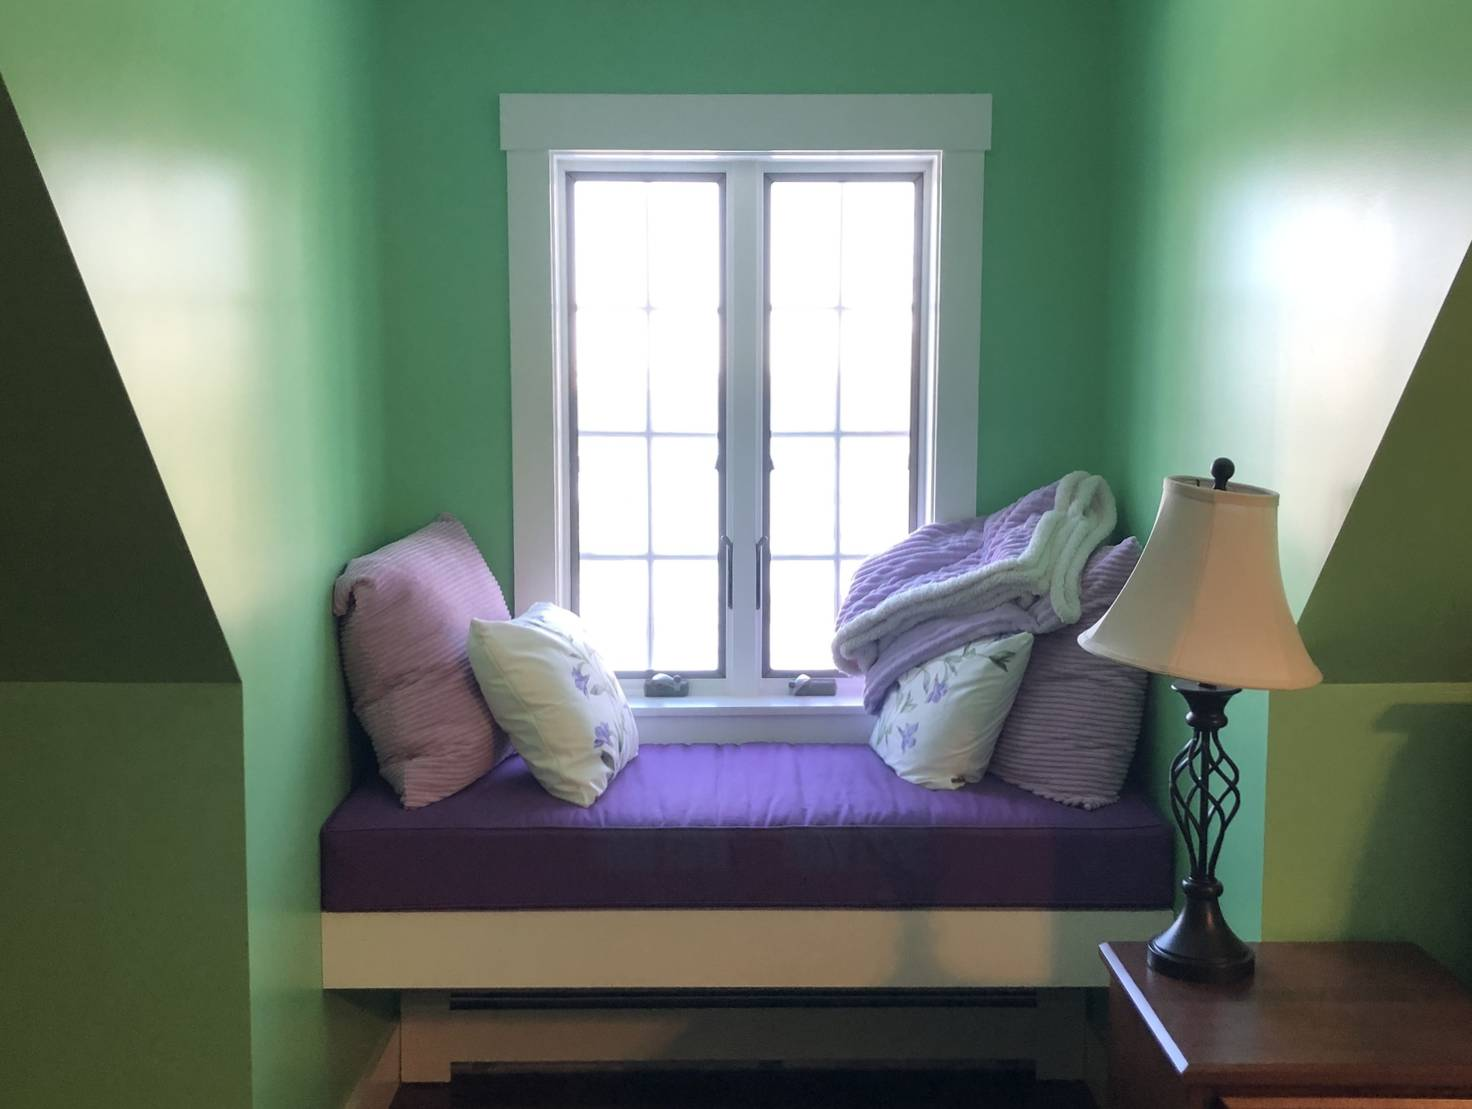 Upgrade your home with a cozy window seat